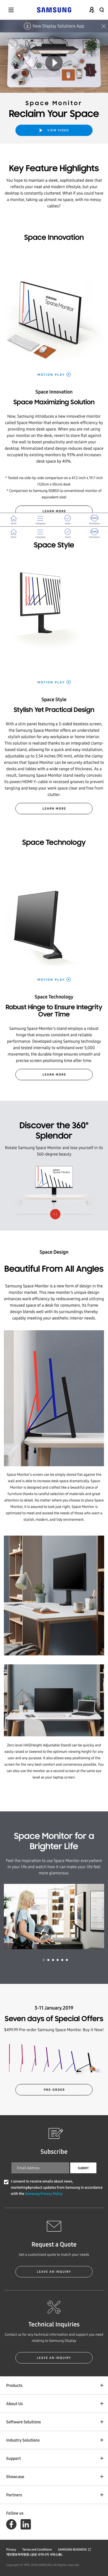 Example of Design for Home & Garden, Mobile Landing Page by displaysolutions.samsung.com/space-monitor | Mobile Landing Page Design